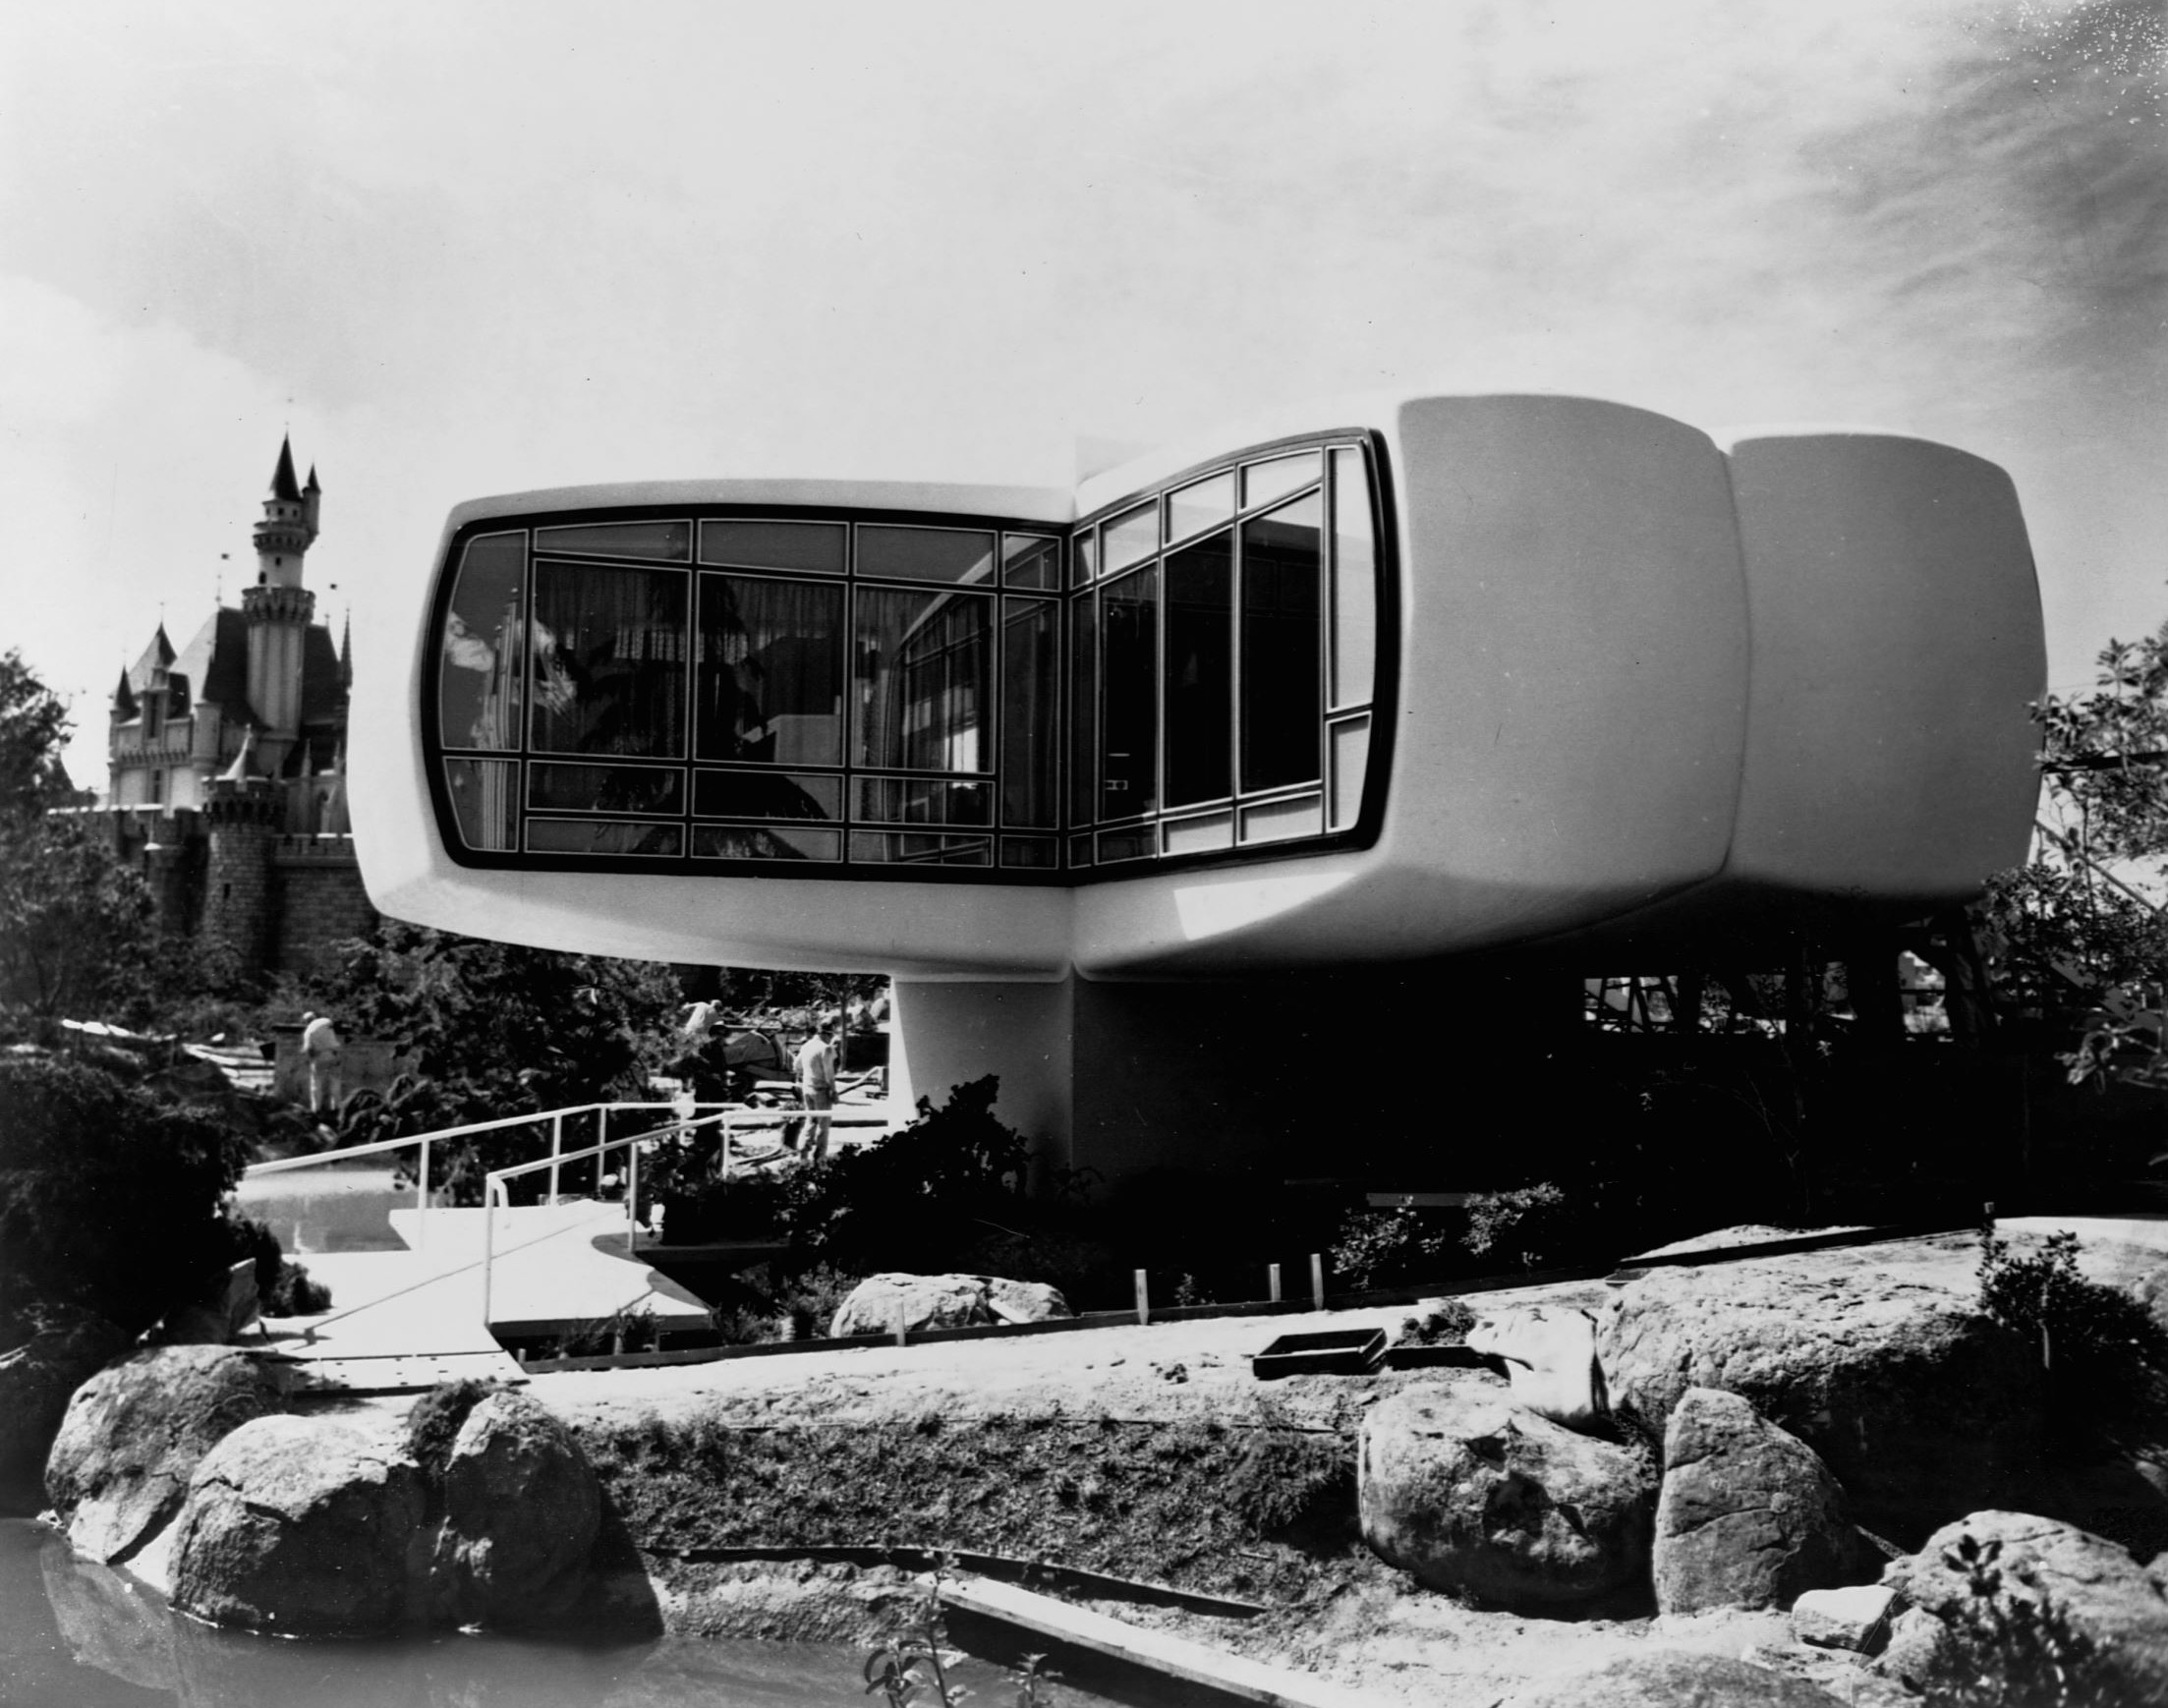 Slide 11 of 33: Tourists at Disneyland tour a plastic 'house of the future' built by Monsanto Chemical Company.   (Photo by Library of Congress/Corbis/VCG via Getty Images)